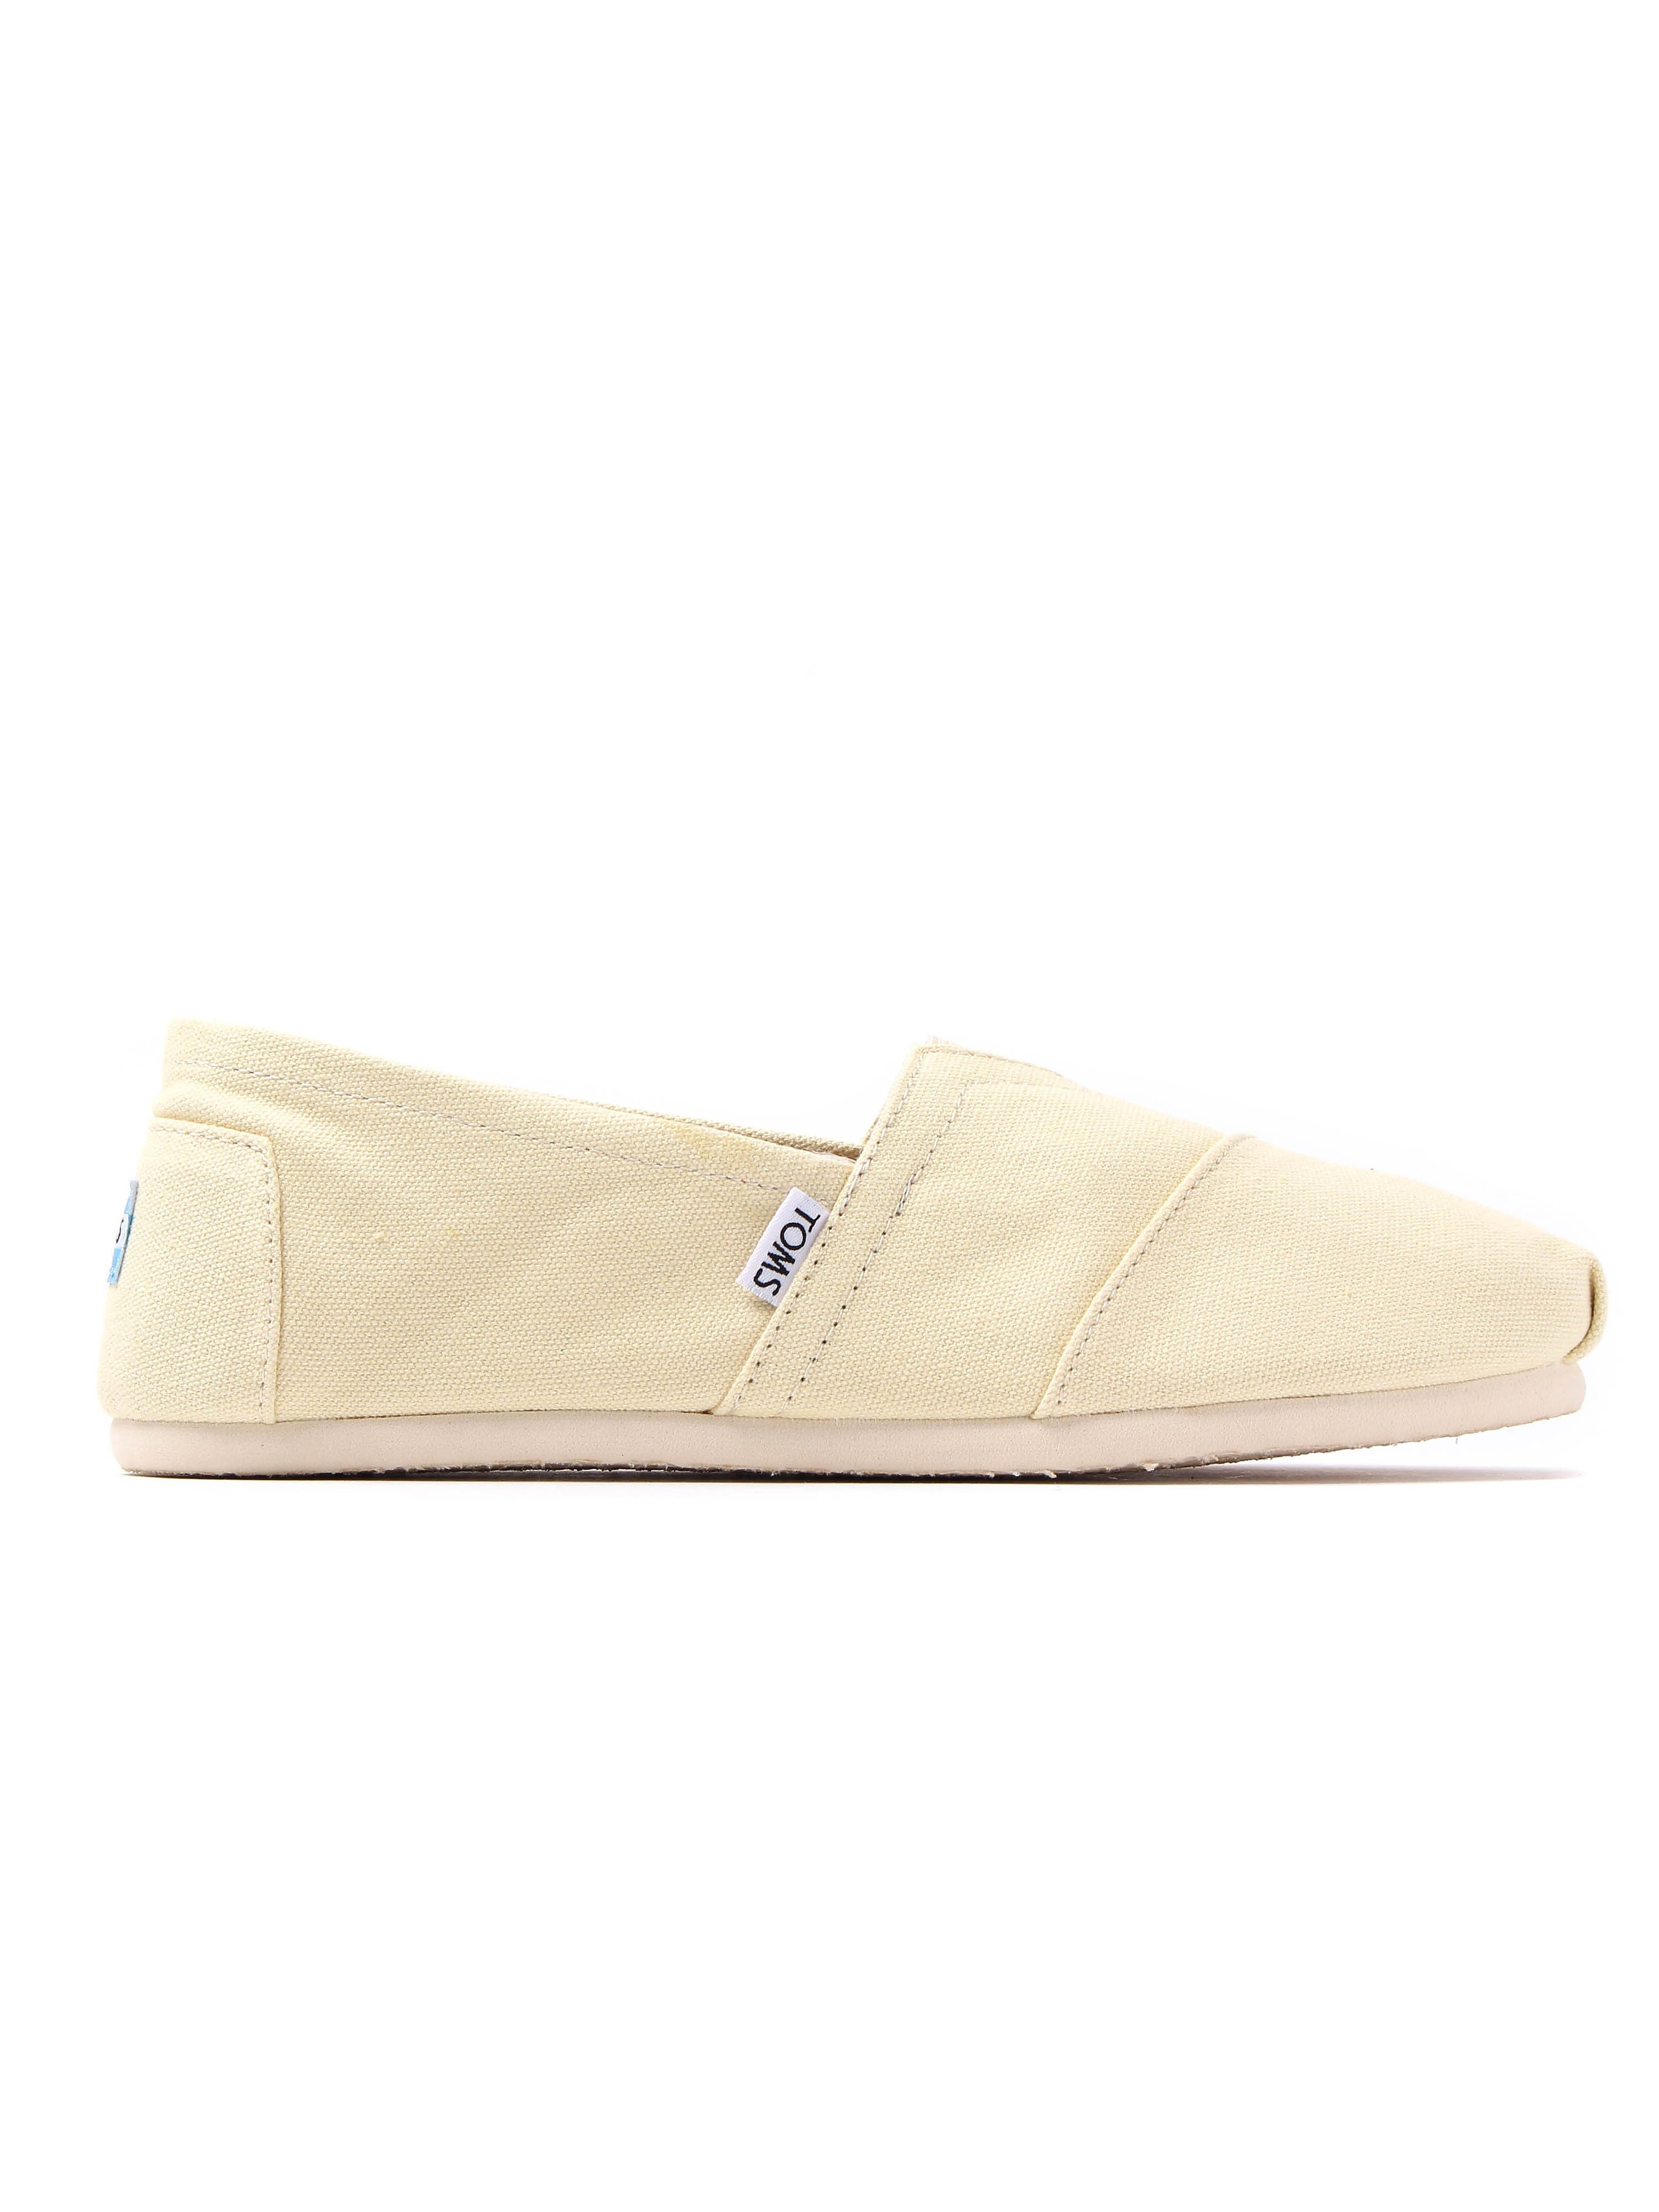 Toms Men's Classic - Natural Canvas